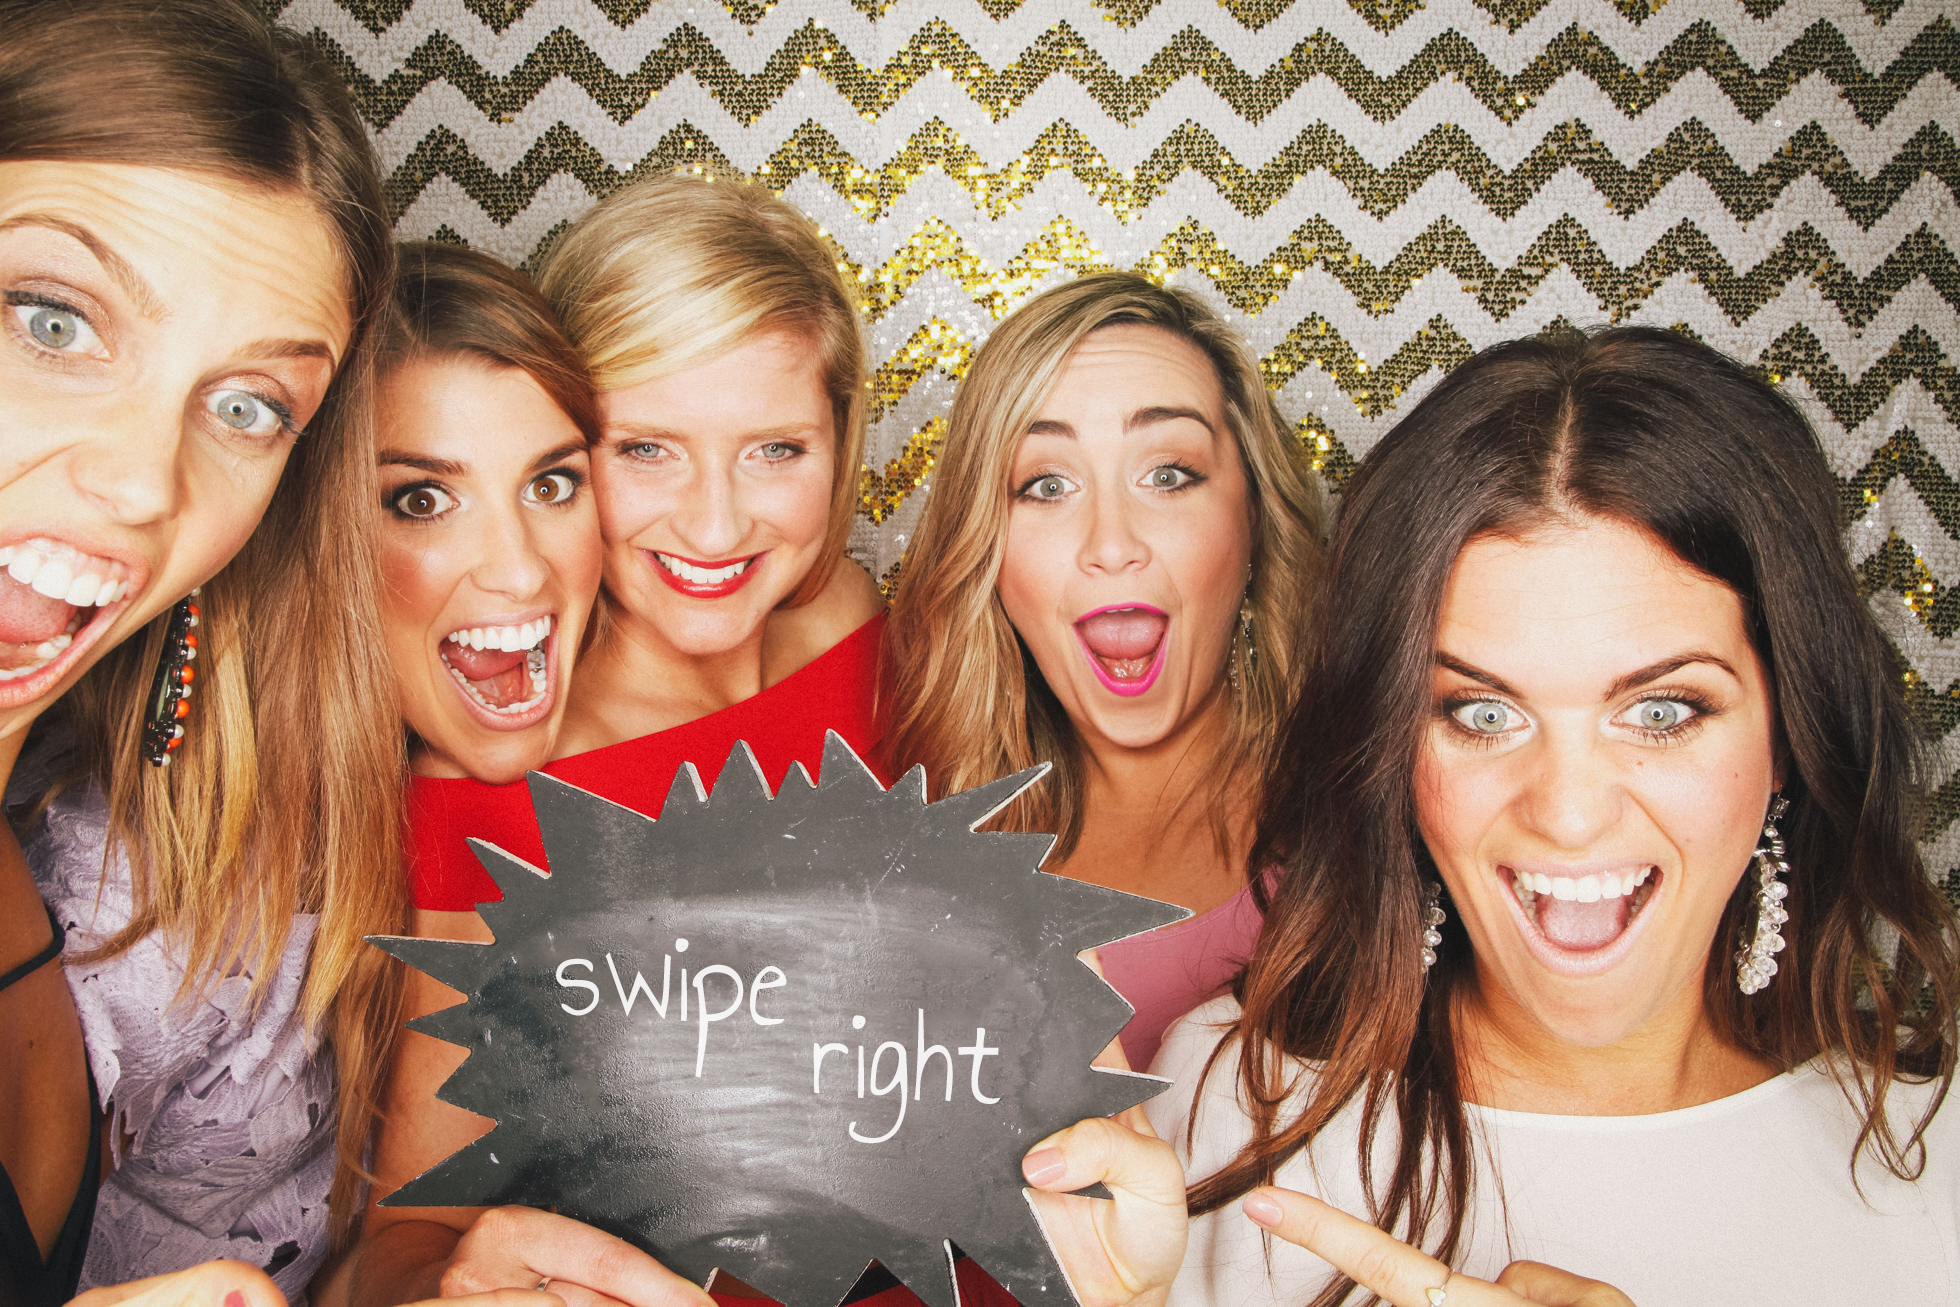 WHATS INCLUDED IN HIRE? - ✭ Unlimited photo booth sessions (each session prints 2 strips).✭ Branded photo strips (your logo on the prints).✭ Awesome Props.✭ Background of your choice.✭ Your very own online photo gallery.✭ A helpful staff member.✭ Travel within 30 minutes of Brisbane.